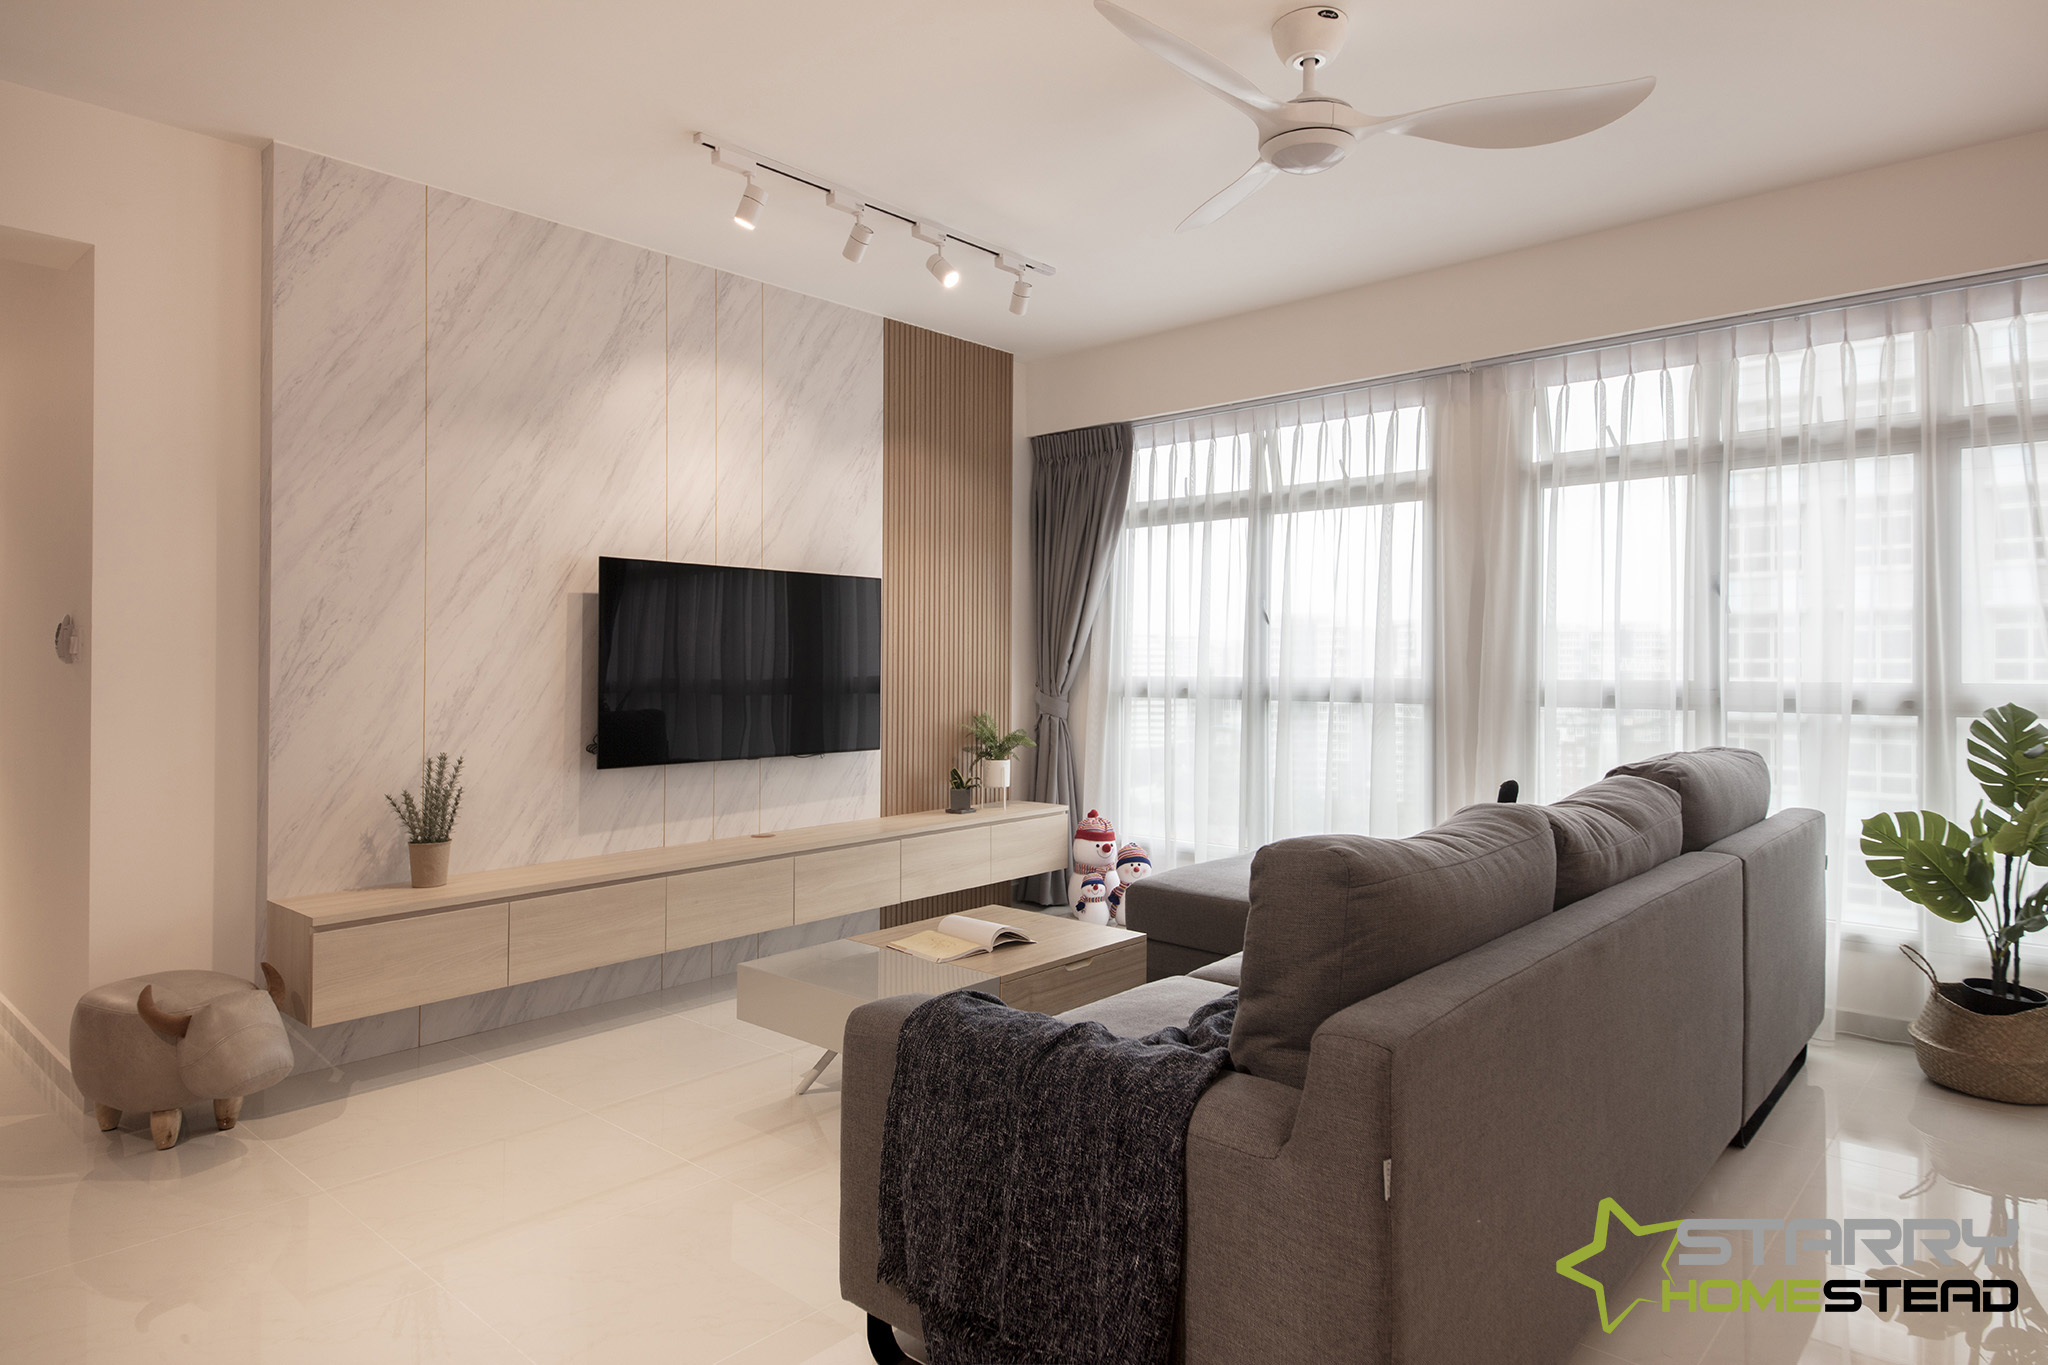 5 Design Tips for Your HDB or Condo Apartment1